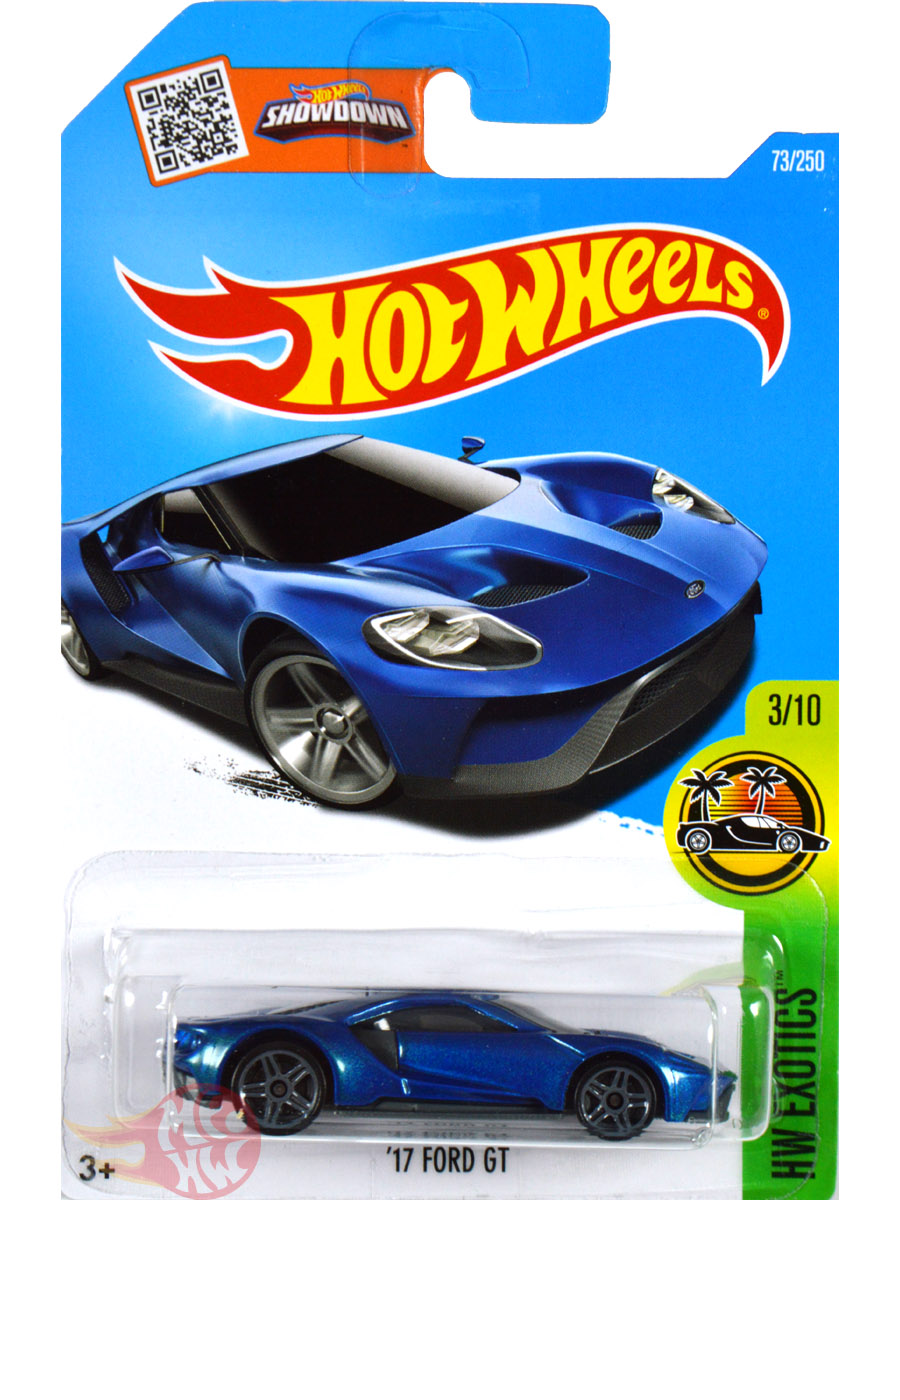 Jual  Ford Gt Biru Blue Hot Wheels Hw Hotwheels Metalflakes Hot Wheels Tokopedia